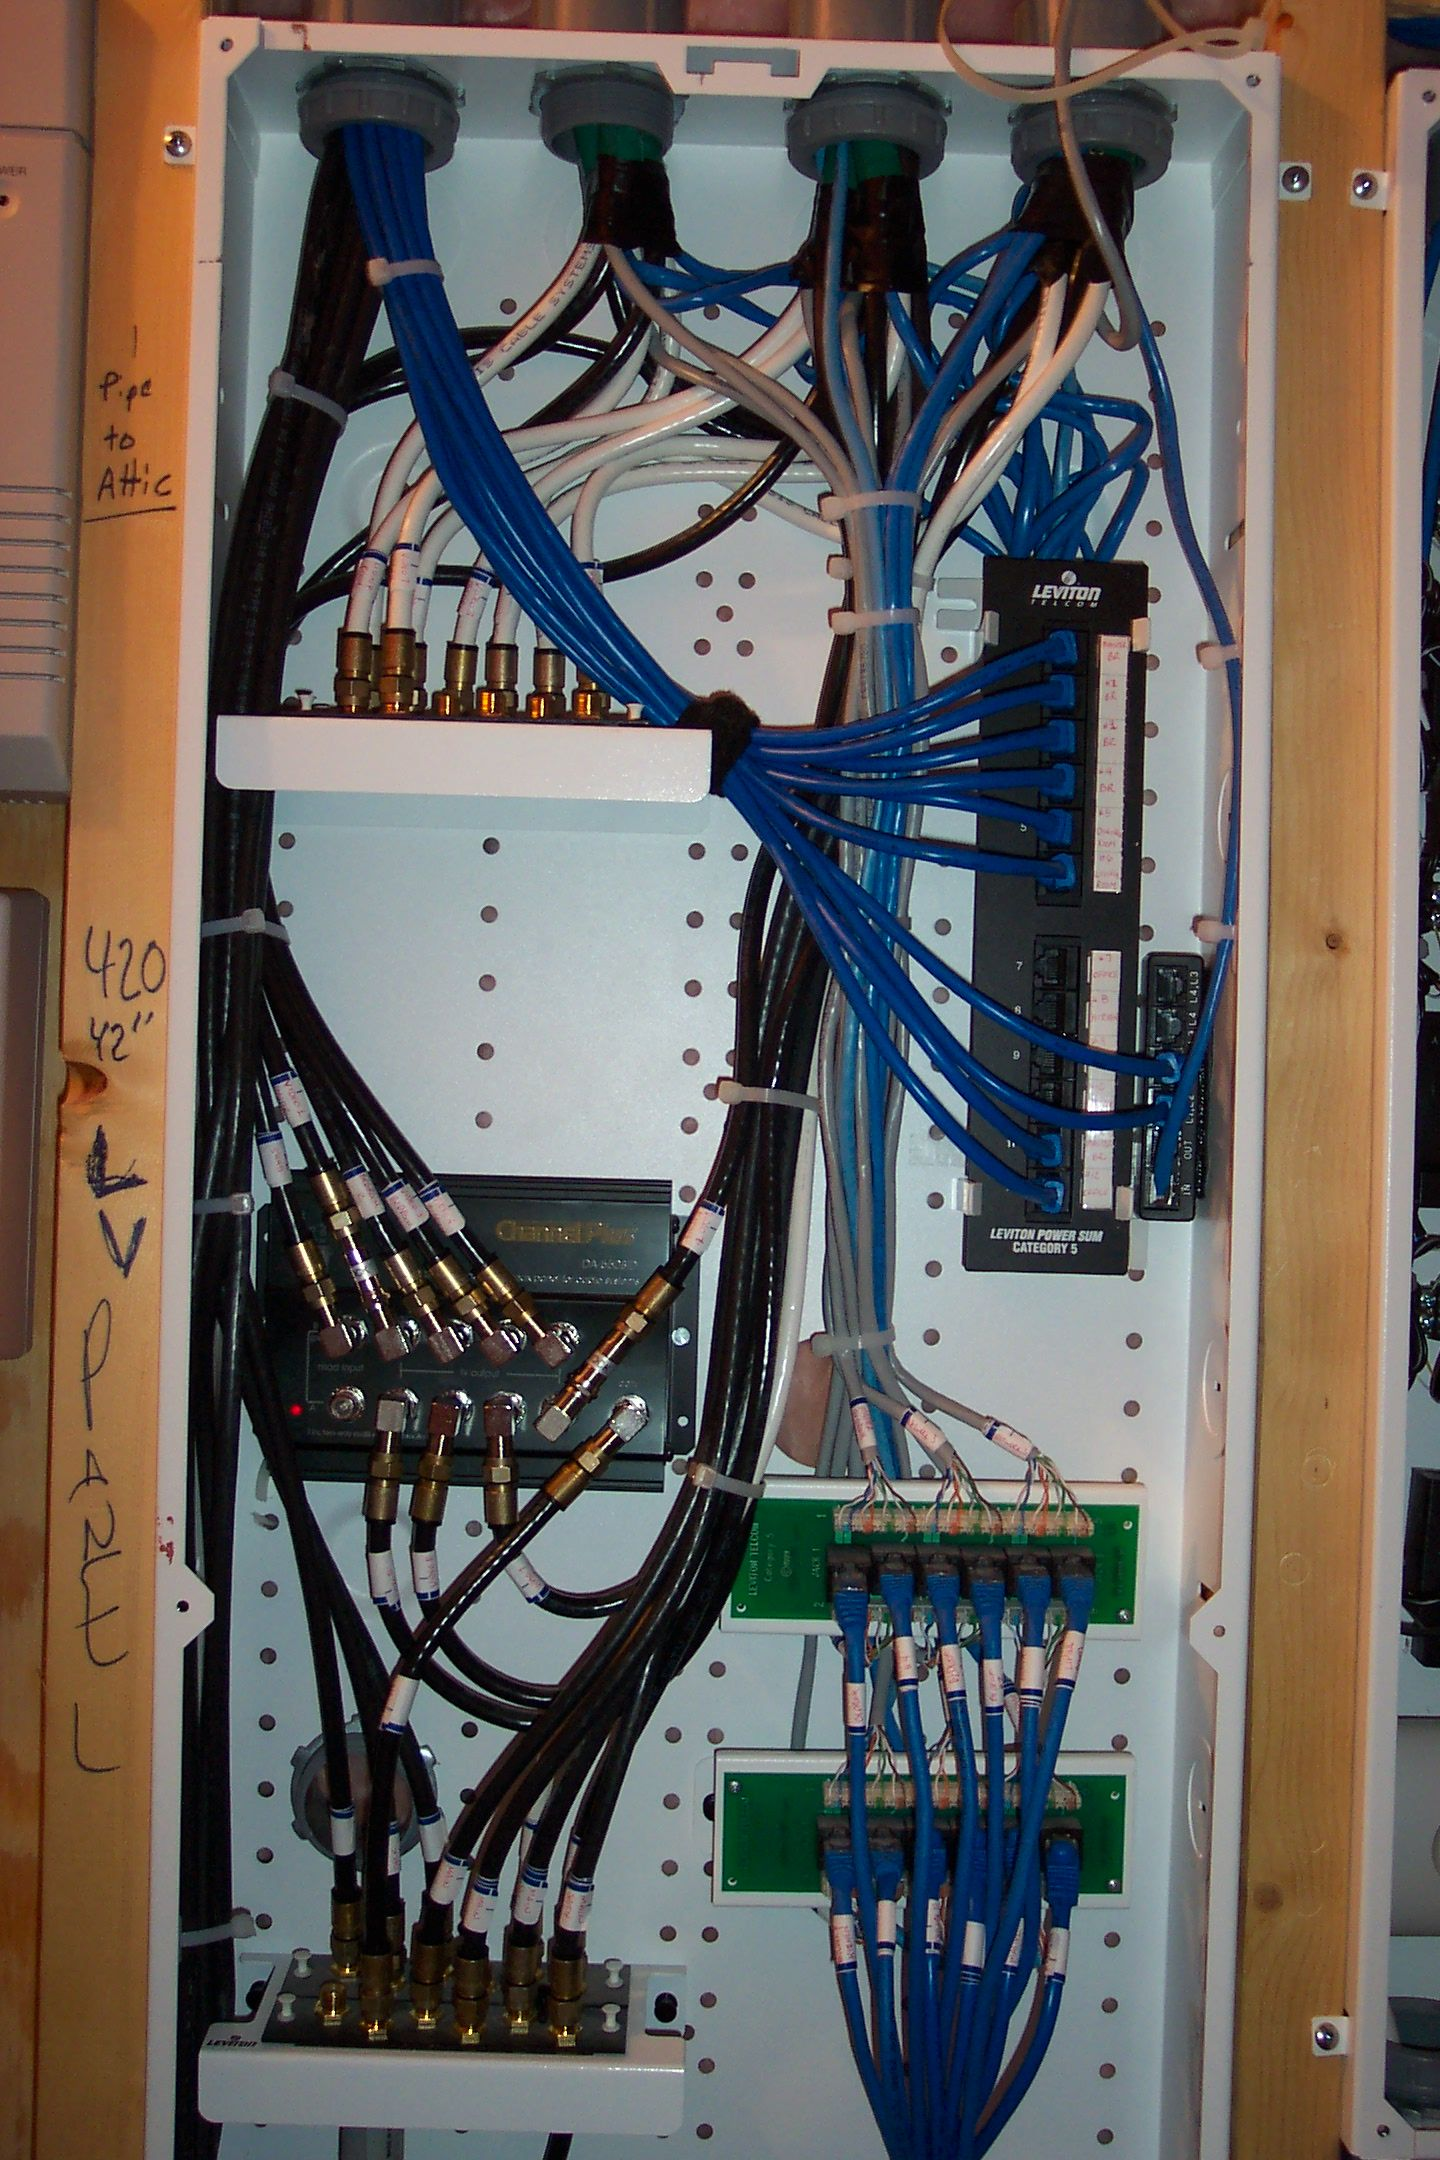 hight resolution of home ethernet wiring panel